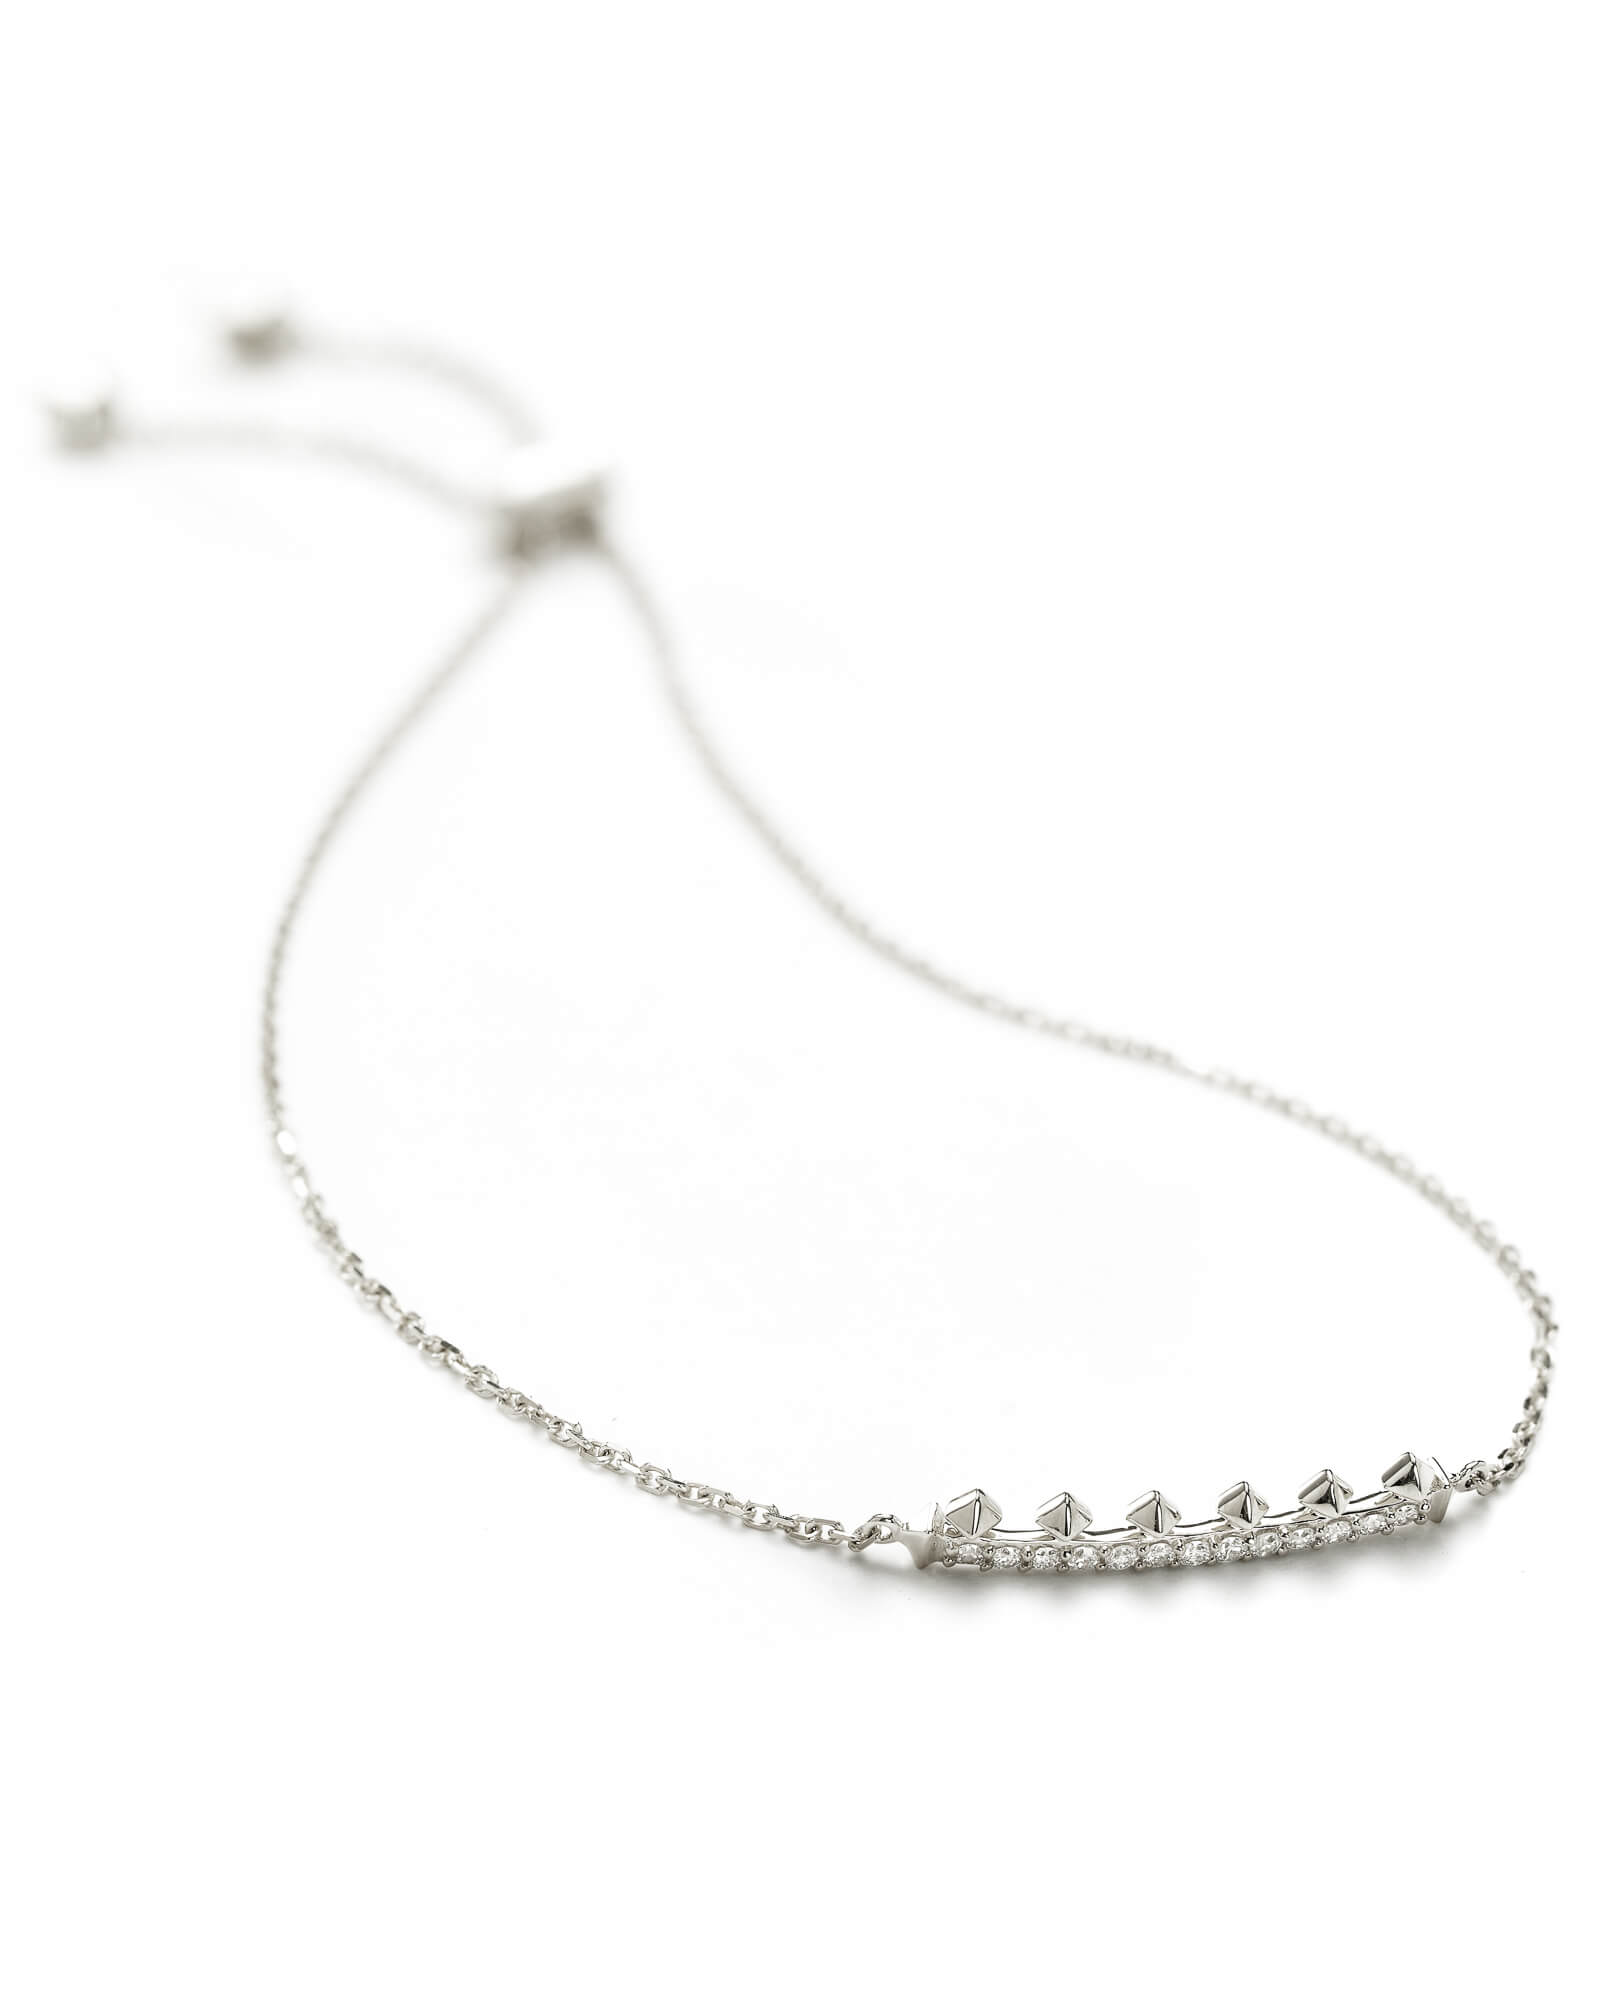 Molly Adjustable Chain Bracelet in White Diamond and 14k White Gold